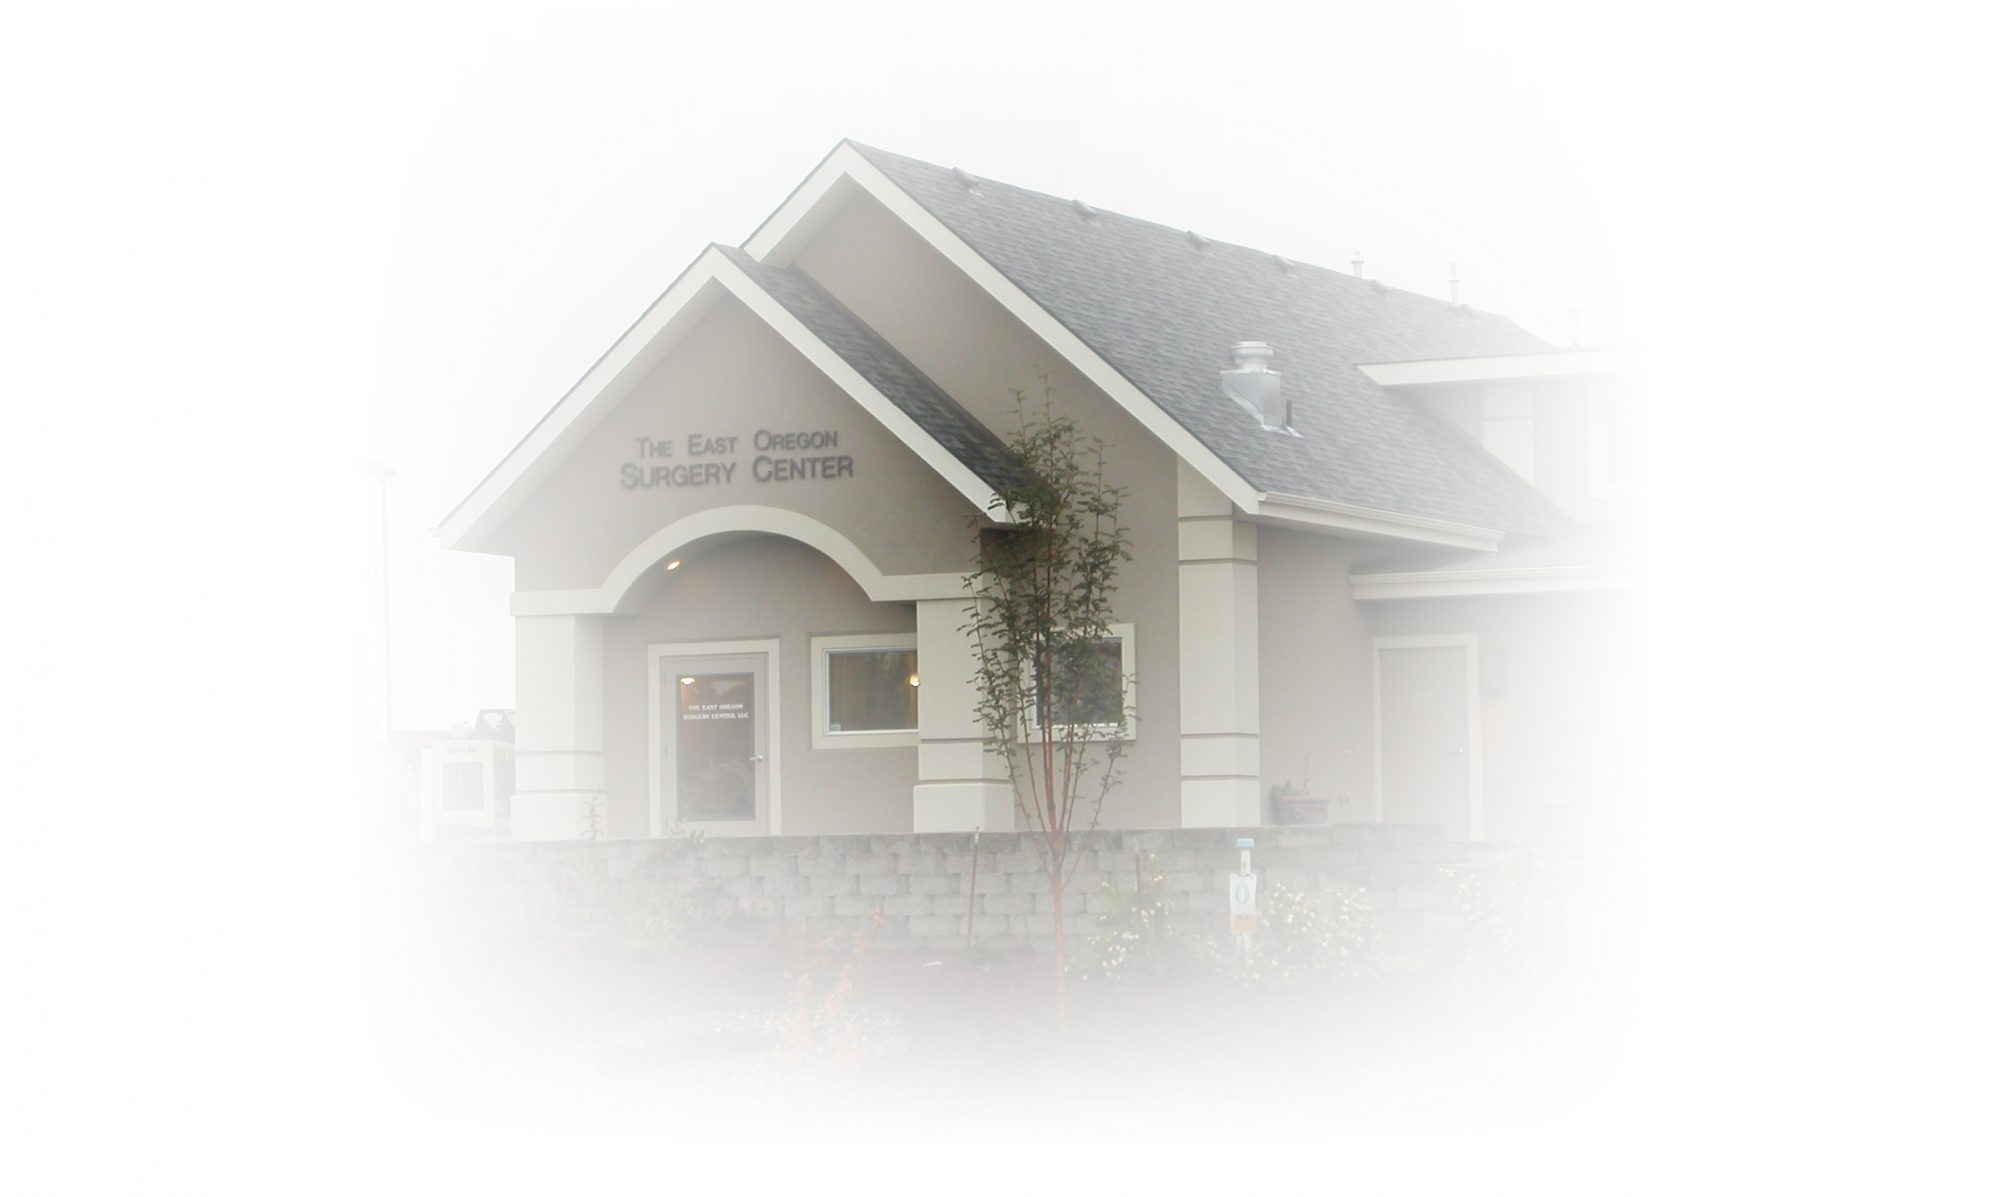 East Oregon Surgery Center